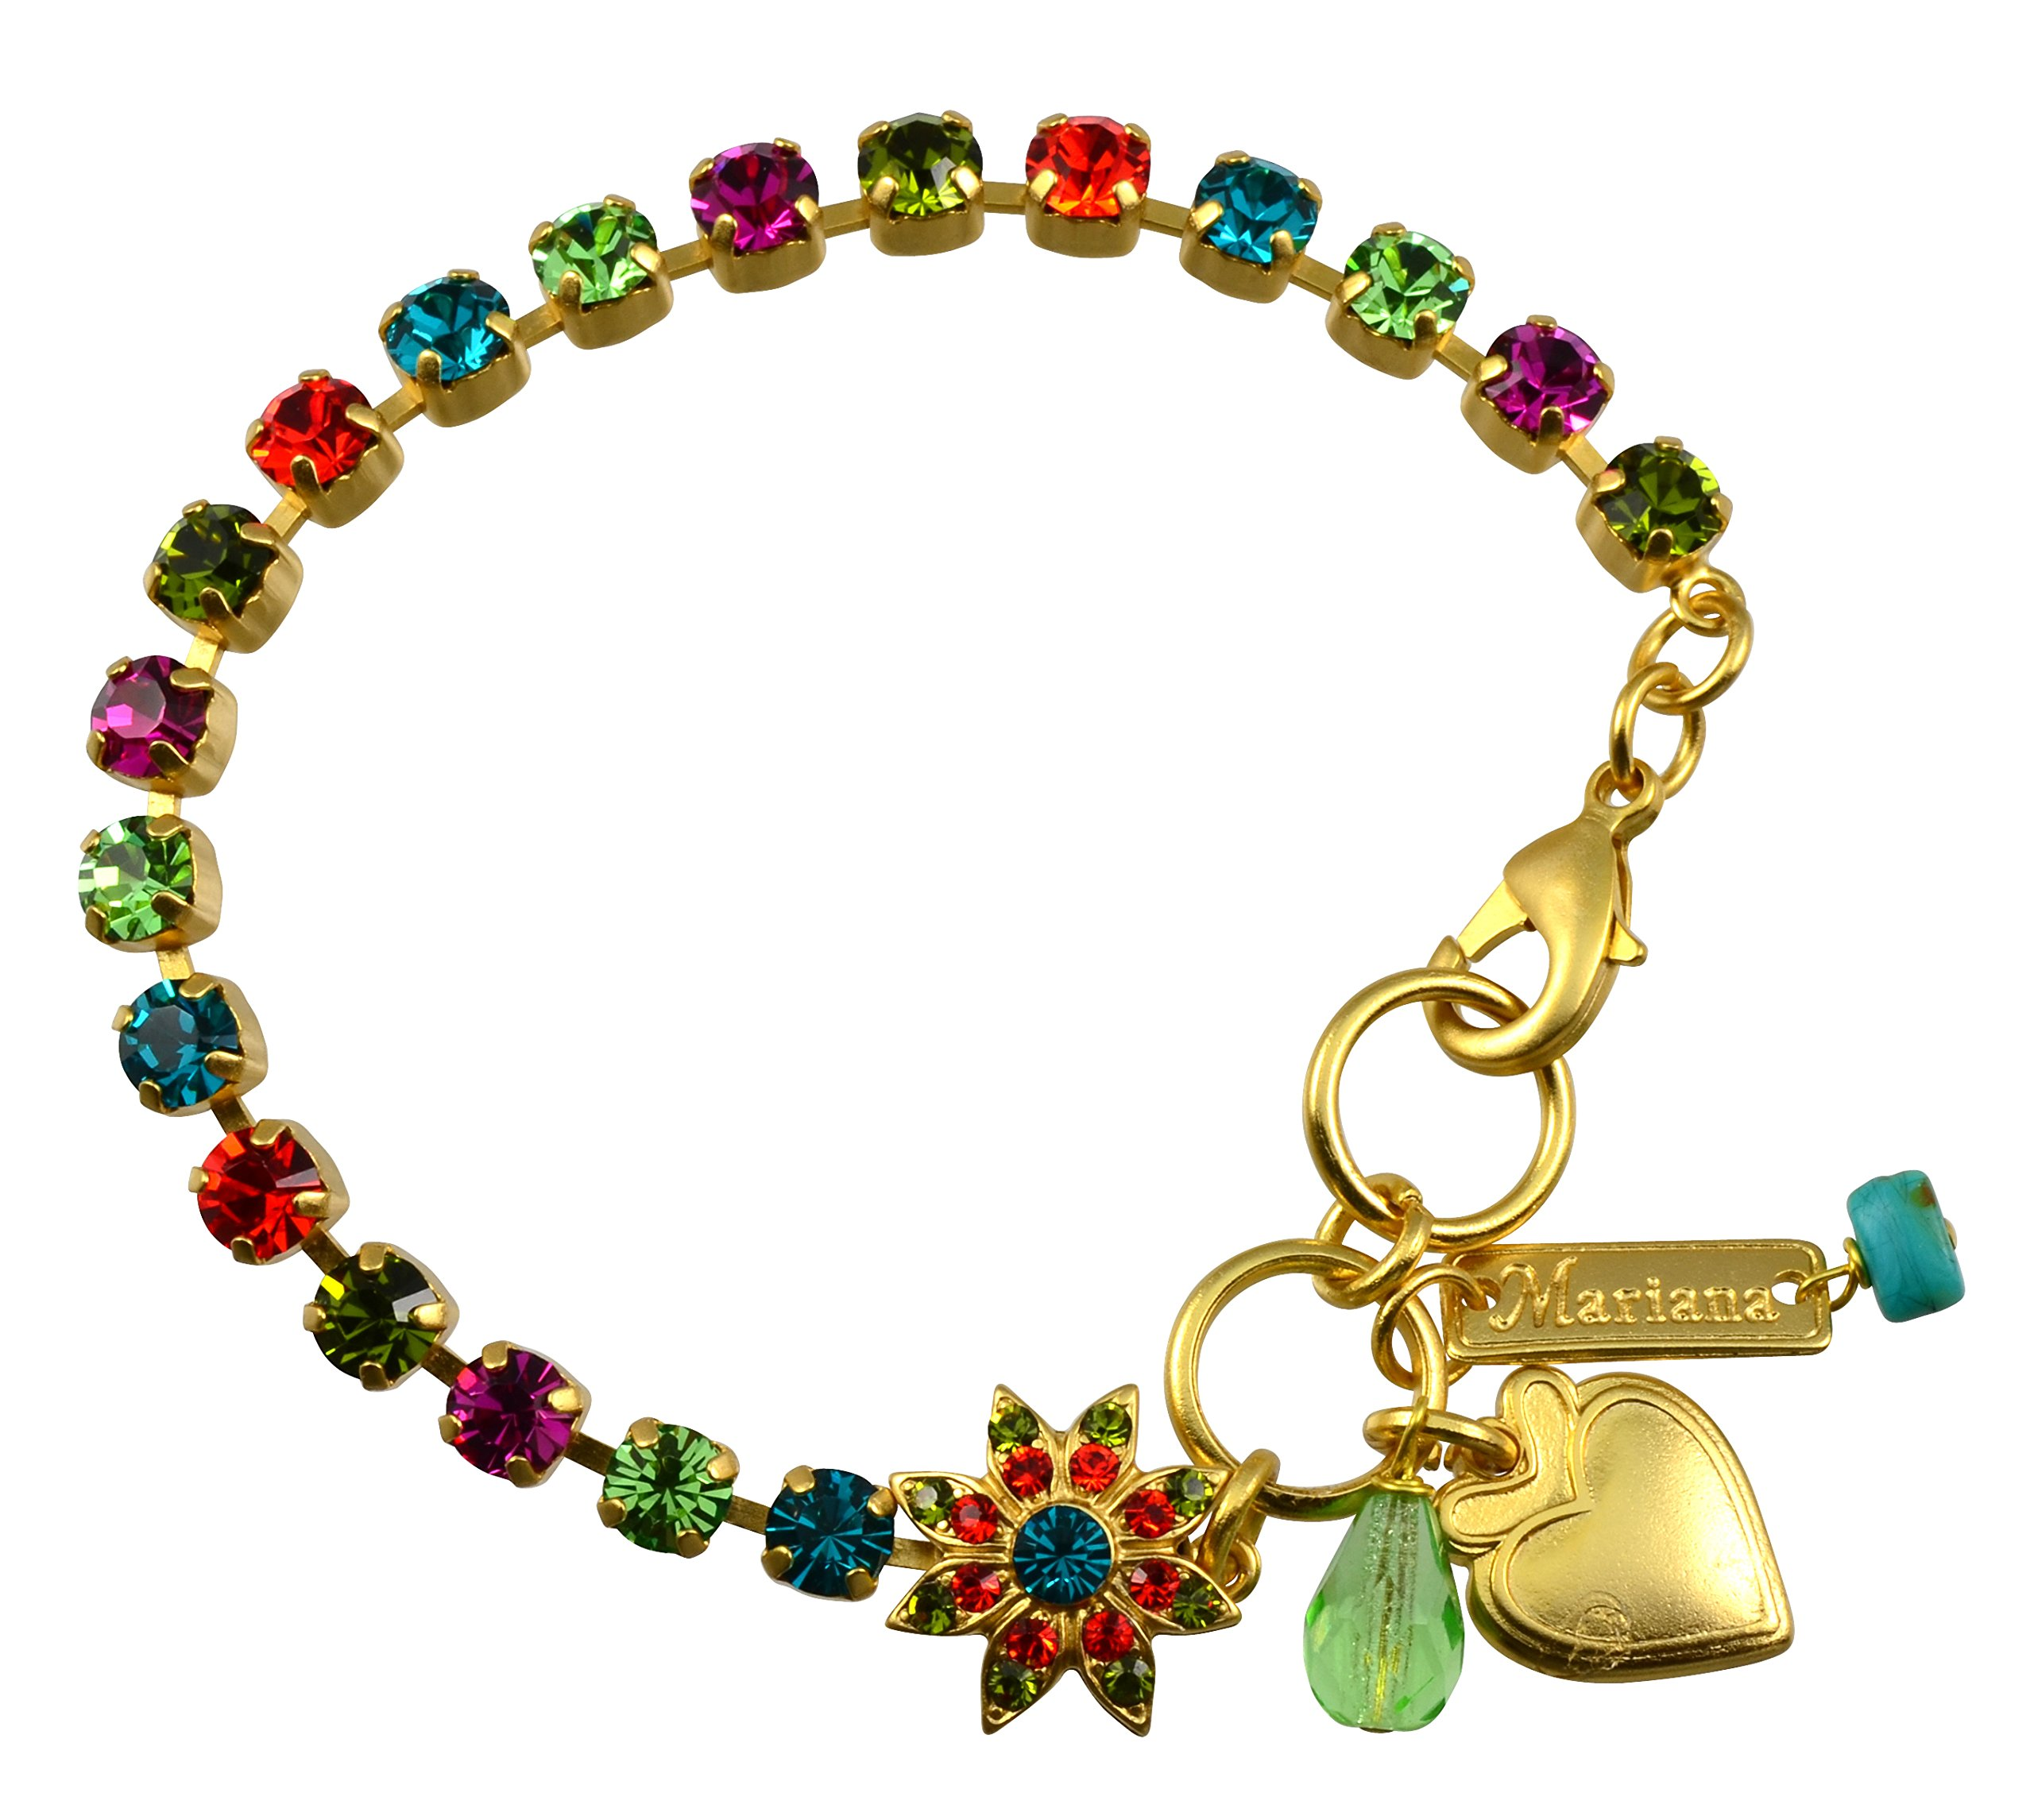 Mariana ''Tiger Lily'' Gold Plated Crystal Tennis Bracelet with Flower and Heart, 8'' by Mariana